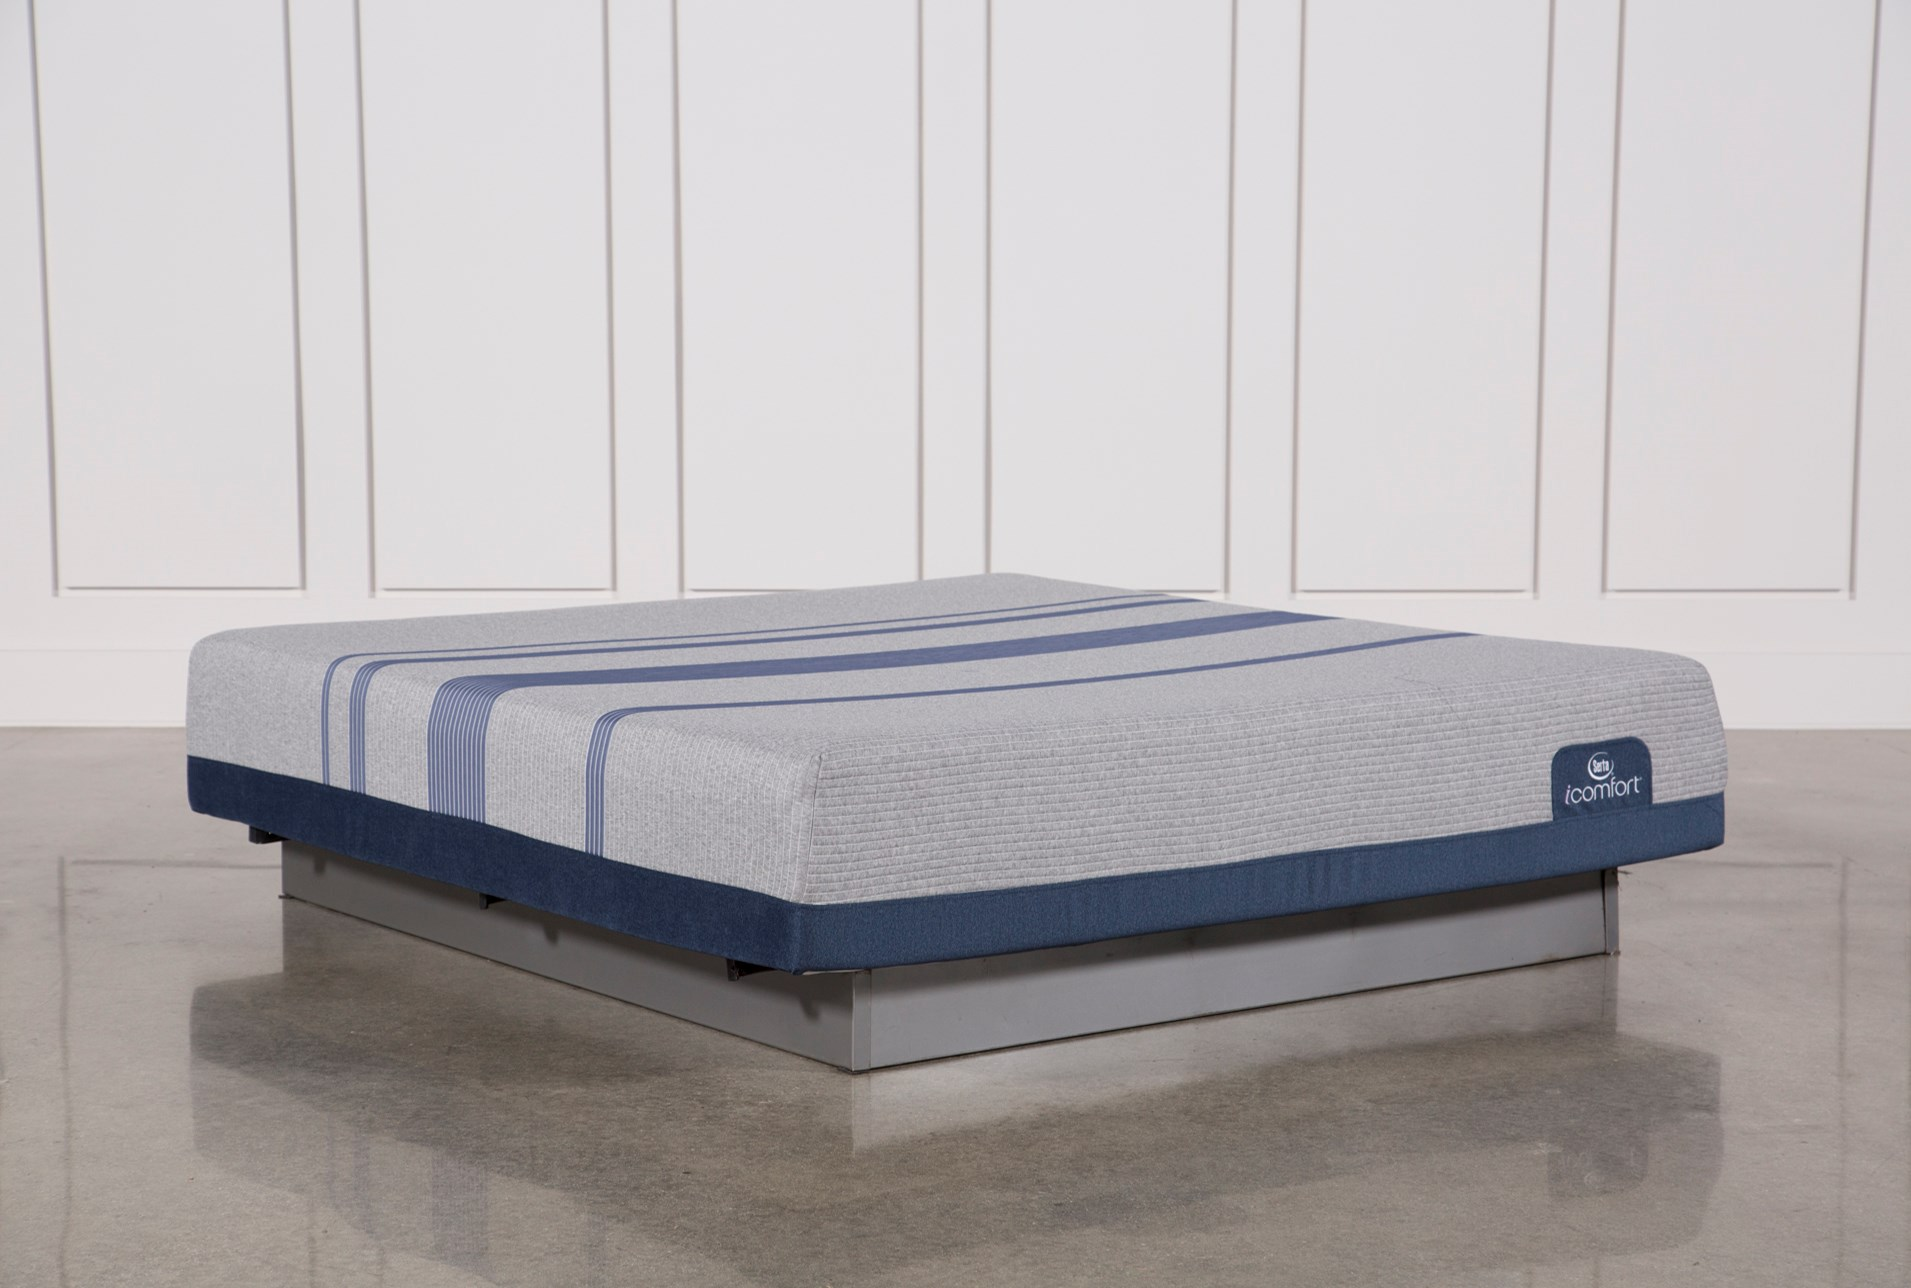 picture renewal goodbed icomfort everfeel mattress reviews serta bed com model